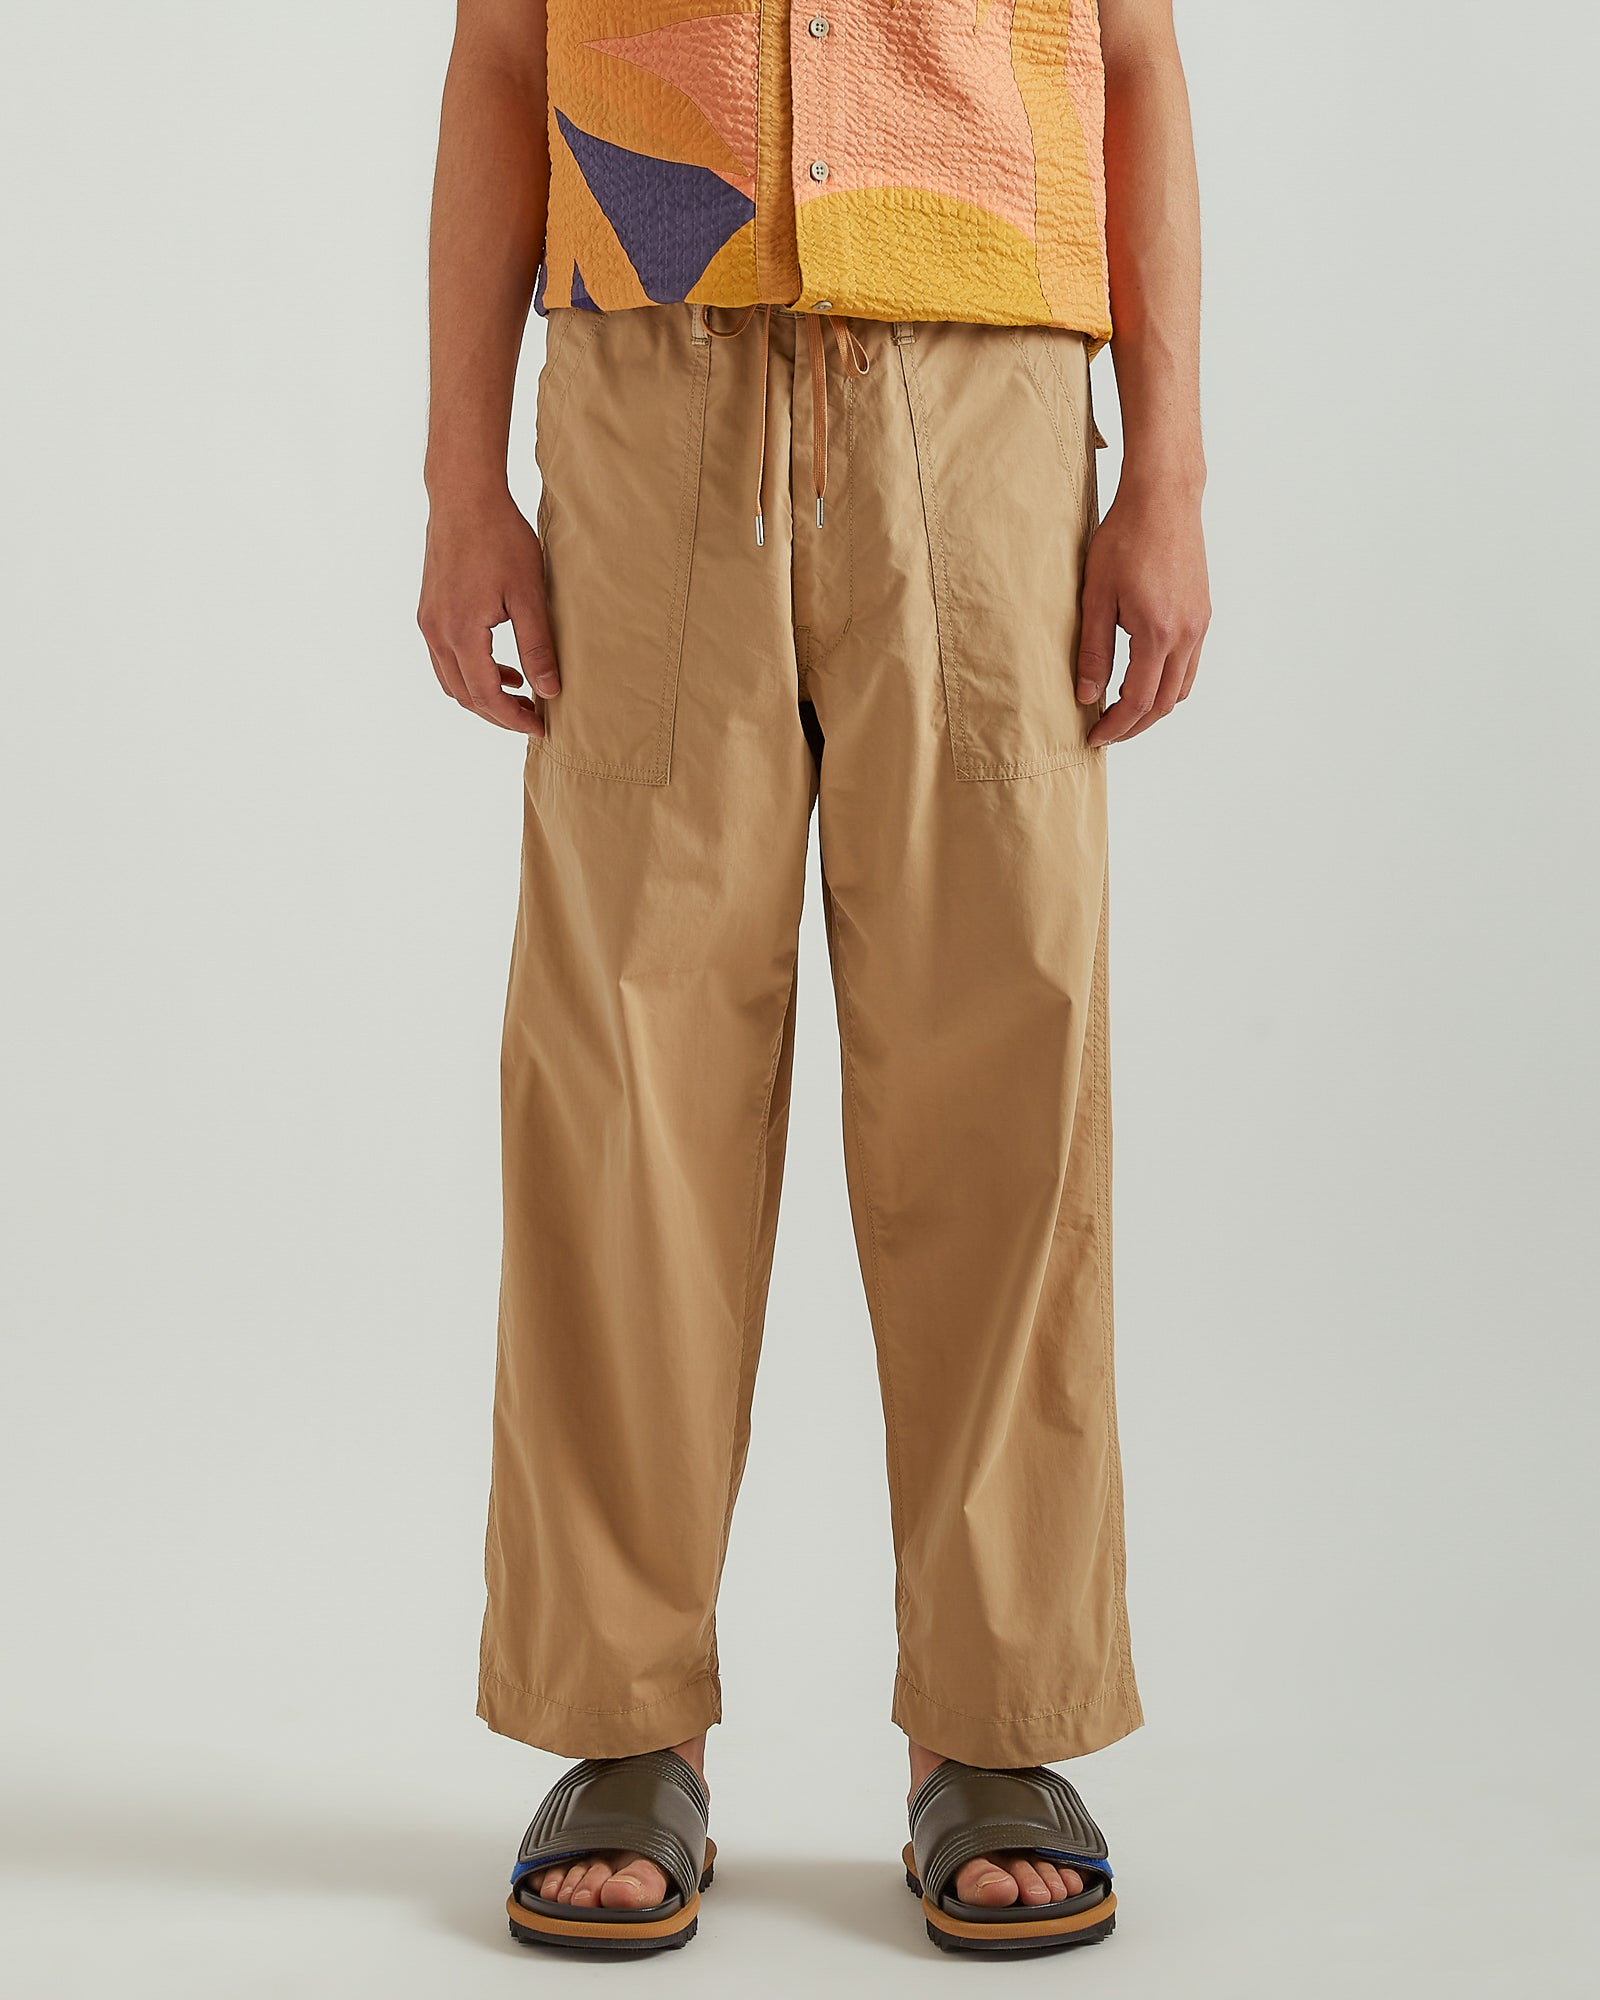 Drawstring Workwear Trouser in Beige